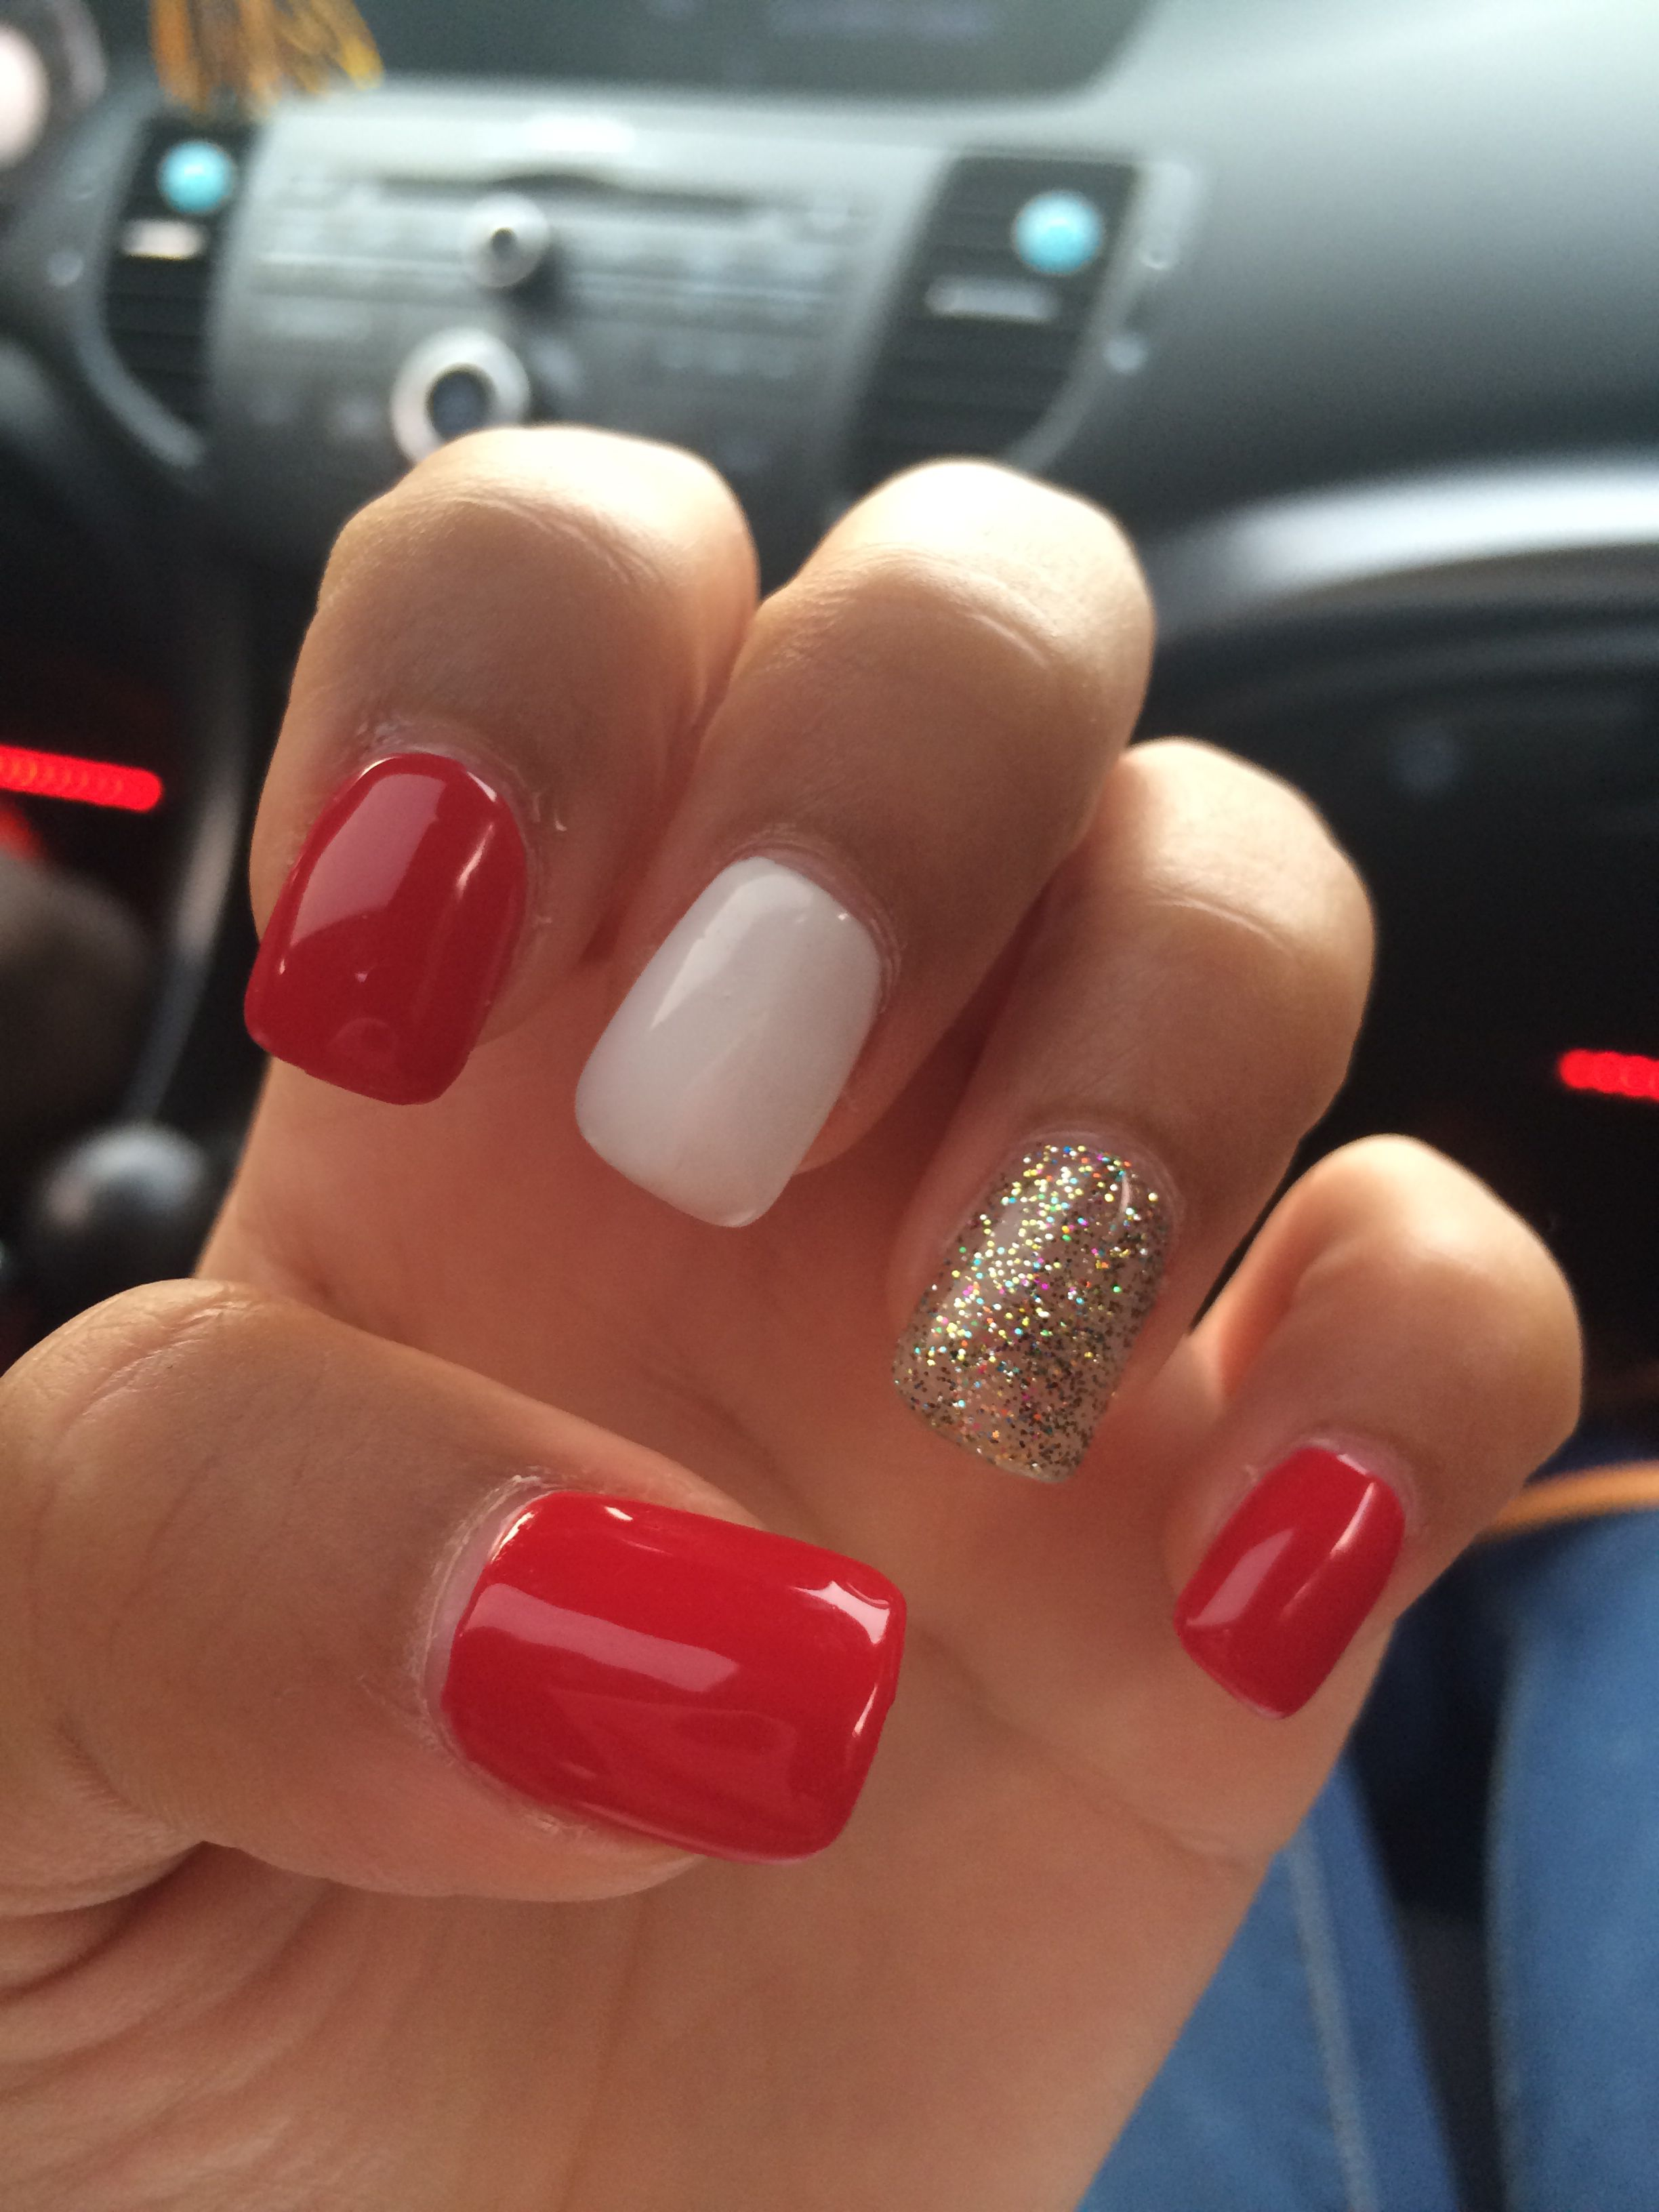 red and white nails perfect for summer or 4th of july state farm nails except for the gold change to silver